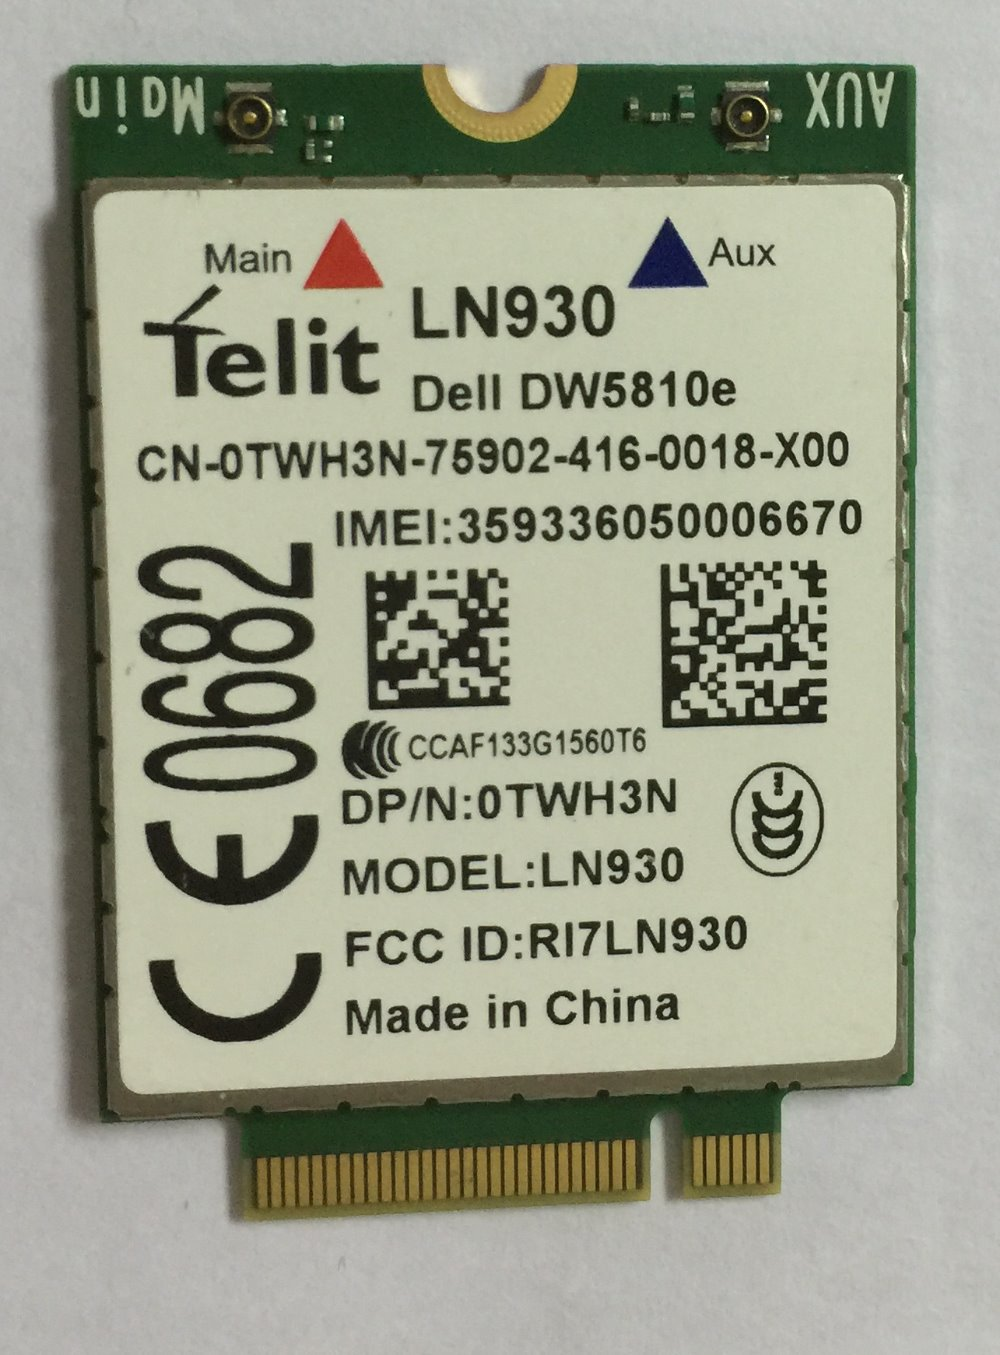 Telit Ln930 Nrr39 Ngff Module Card For Dell Wireless Wifi Dw5810e Venue 11 Pro 4g/lte/dc-hspa+ Wwan 4g High-speed Network Card jinyshi for 68dp9 2pcs ngff m 2 ipex4 antenna 3g card for dell venue 8 and 11 pro em8805 wwan hspa ngff dw5570